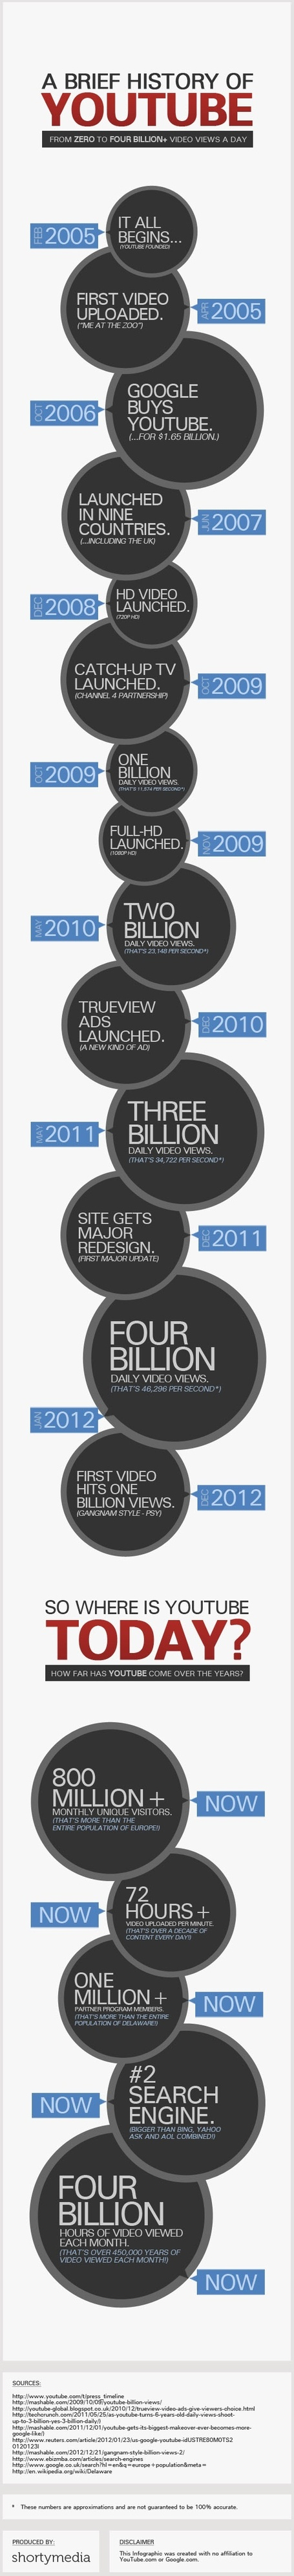 The Facts and Figures on YouTube in 2013 - Infographic | DV8 Digital Marketing Tips and Insight | Scoop.it